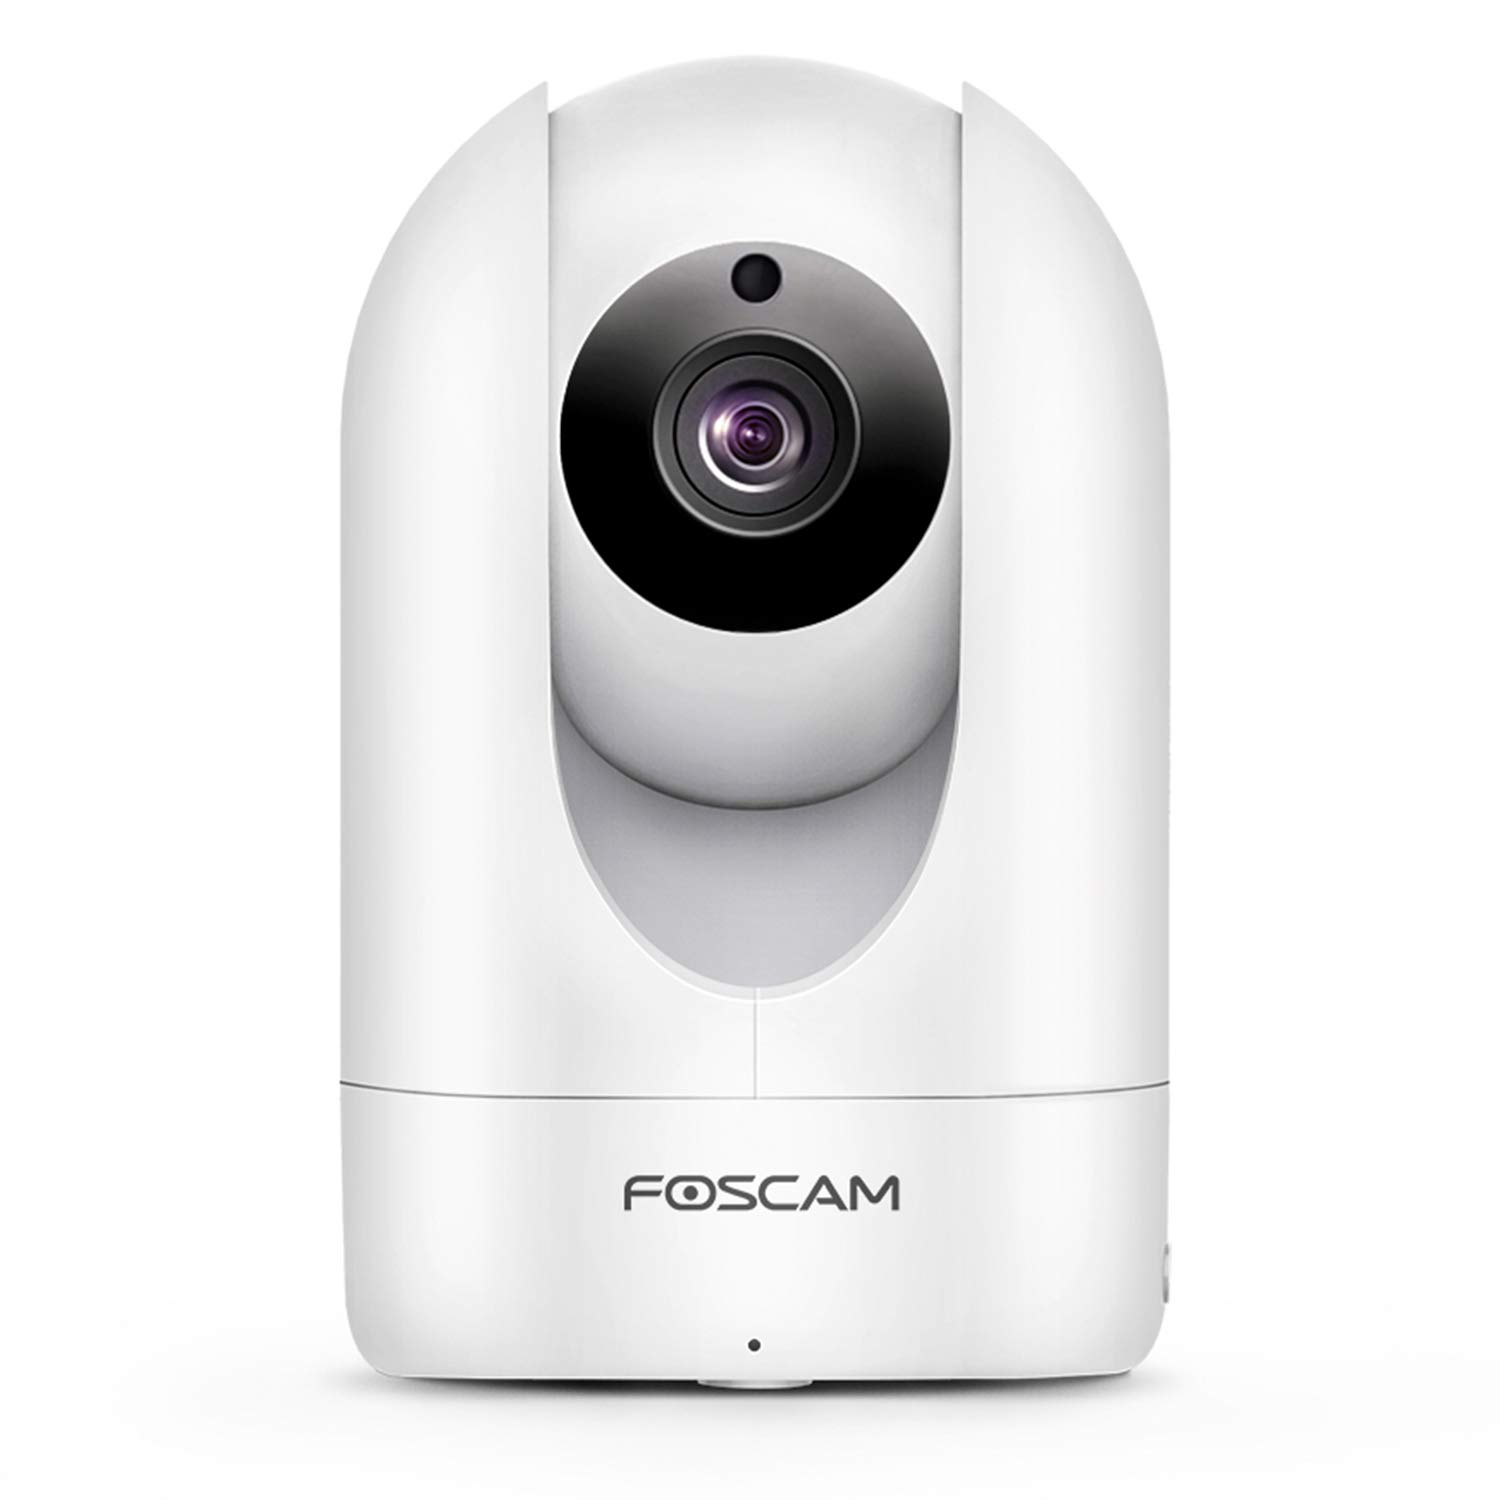 Foscam Full HD 1080P WiFi IP Camera, 2MP Indoor Pan/Tilt Home Security Surveillance Camera Night Vision, Two-Way Audio, Motion/Sound Detection, Free Image/Video Cloud Service Available, R2C White by Foscam